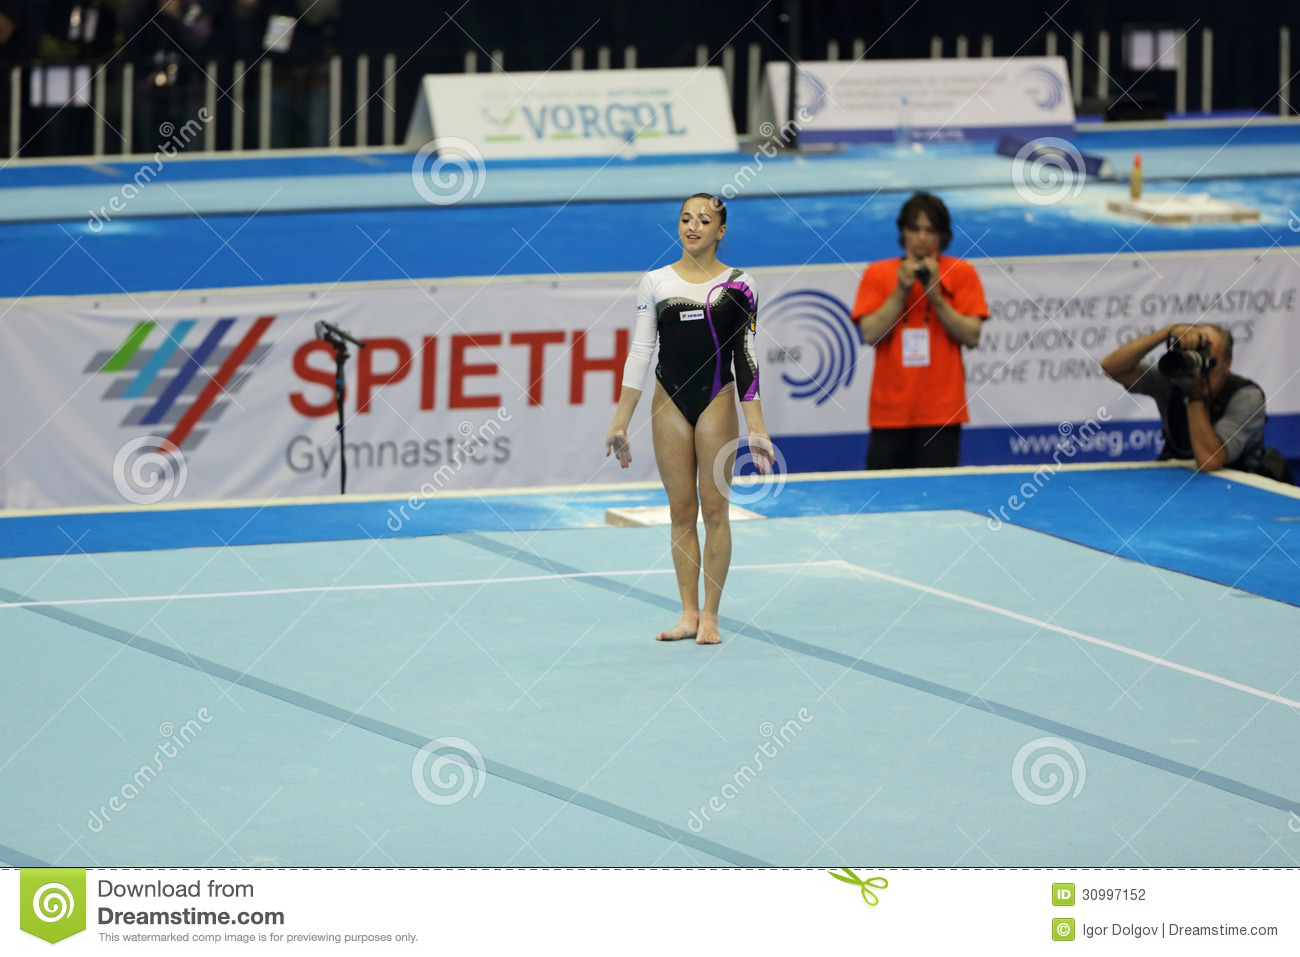 Larisa andreea iordache editorial photography image for Floor gymnastics